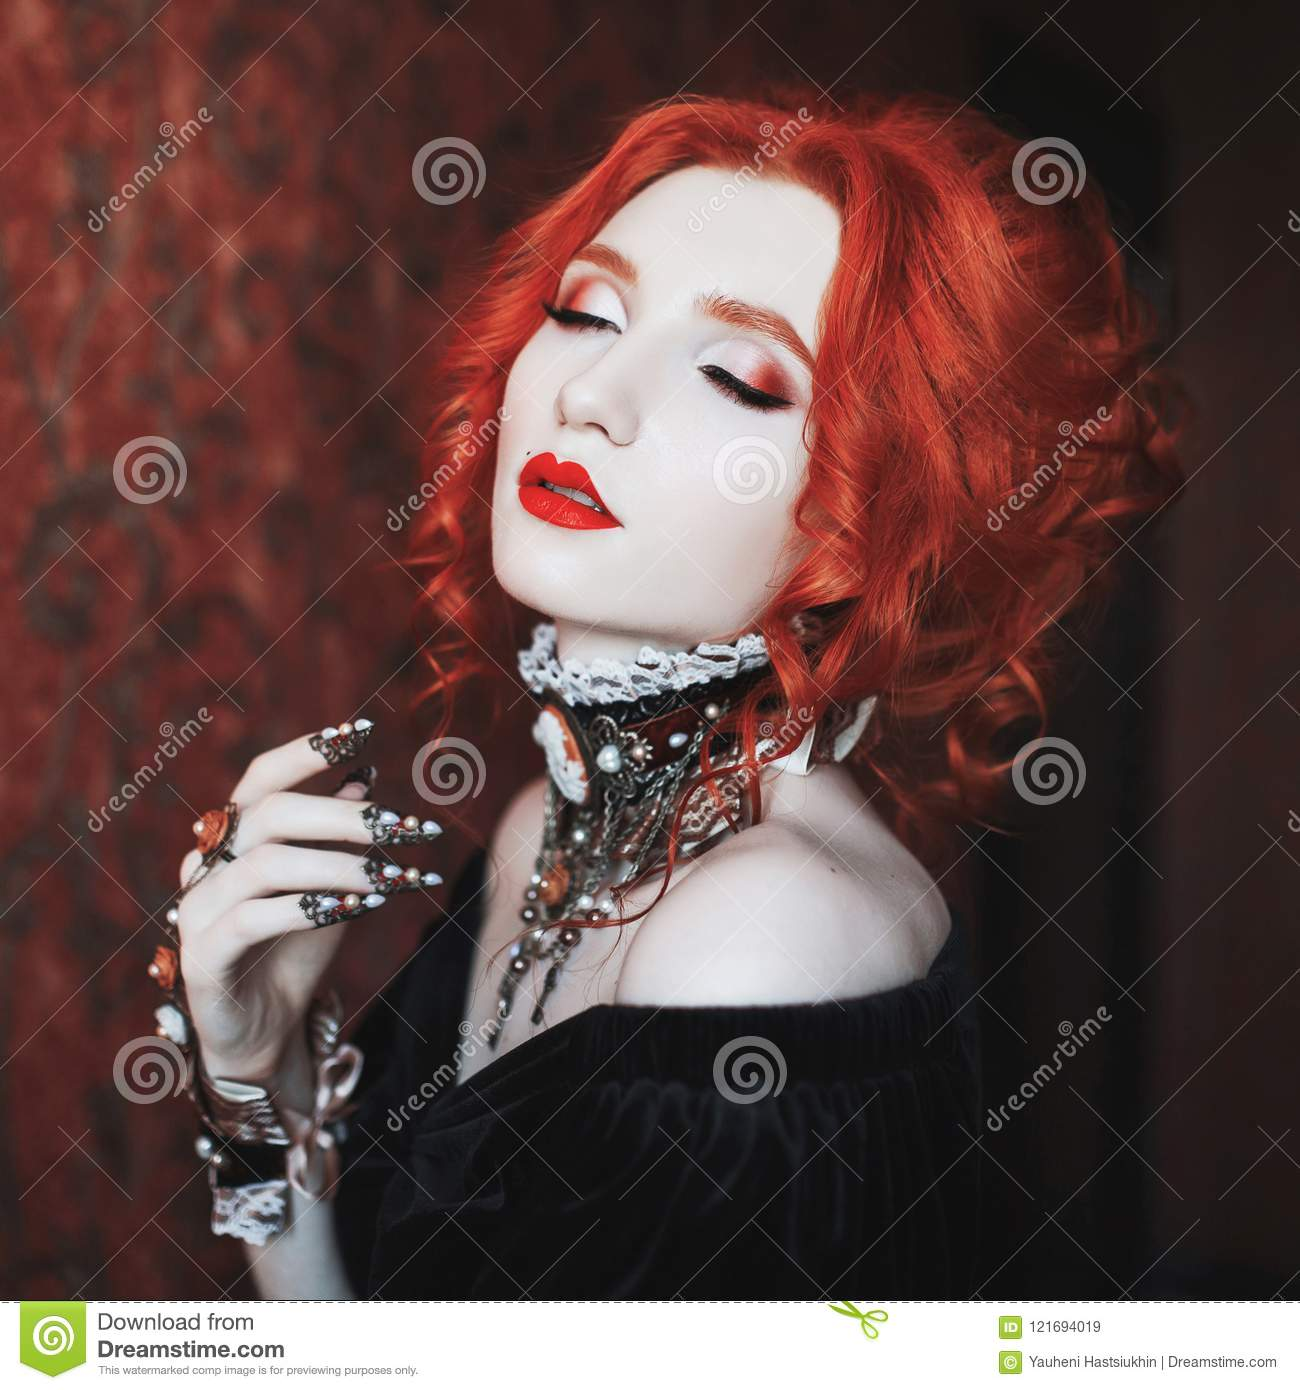 A woman is a vampire with pale skin and red hair in a black dress and a necklace on her neck. Girl witch with vampire claws